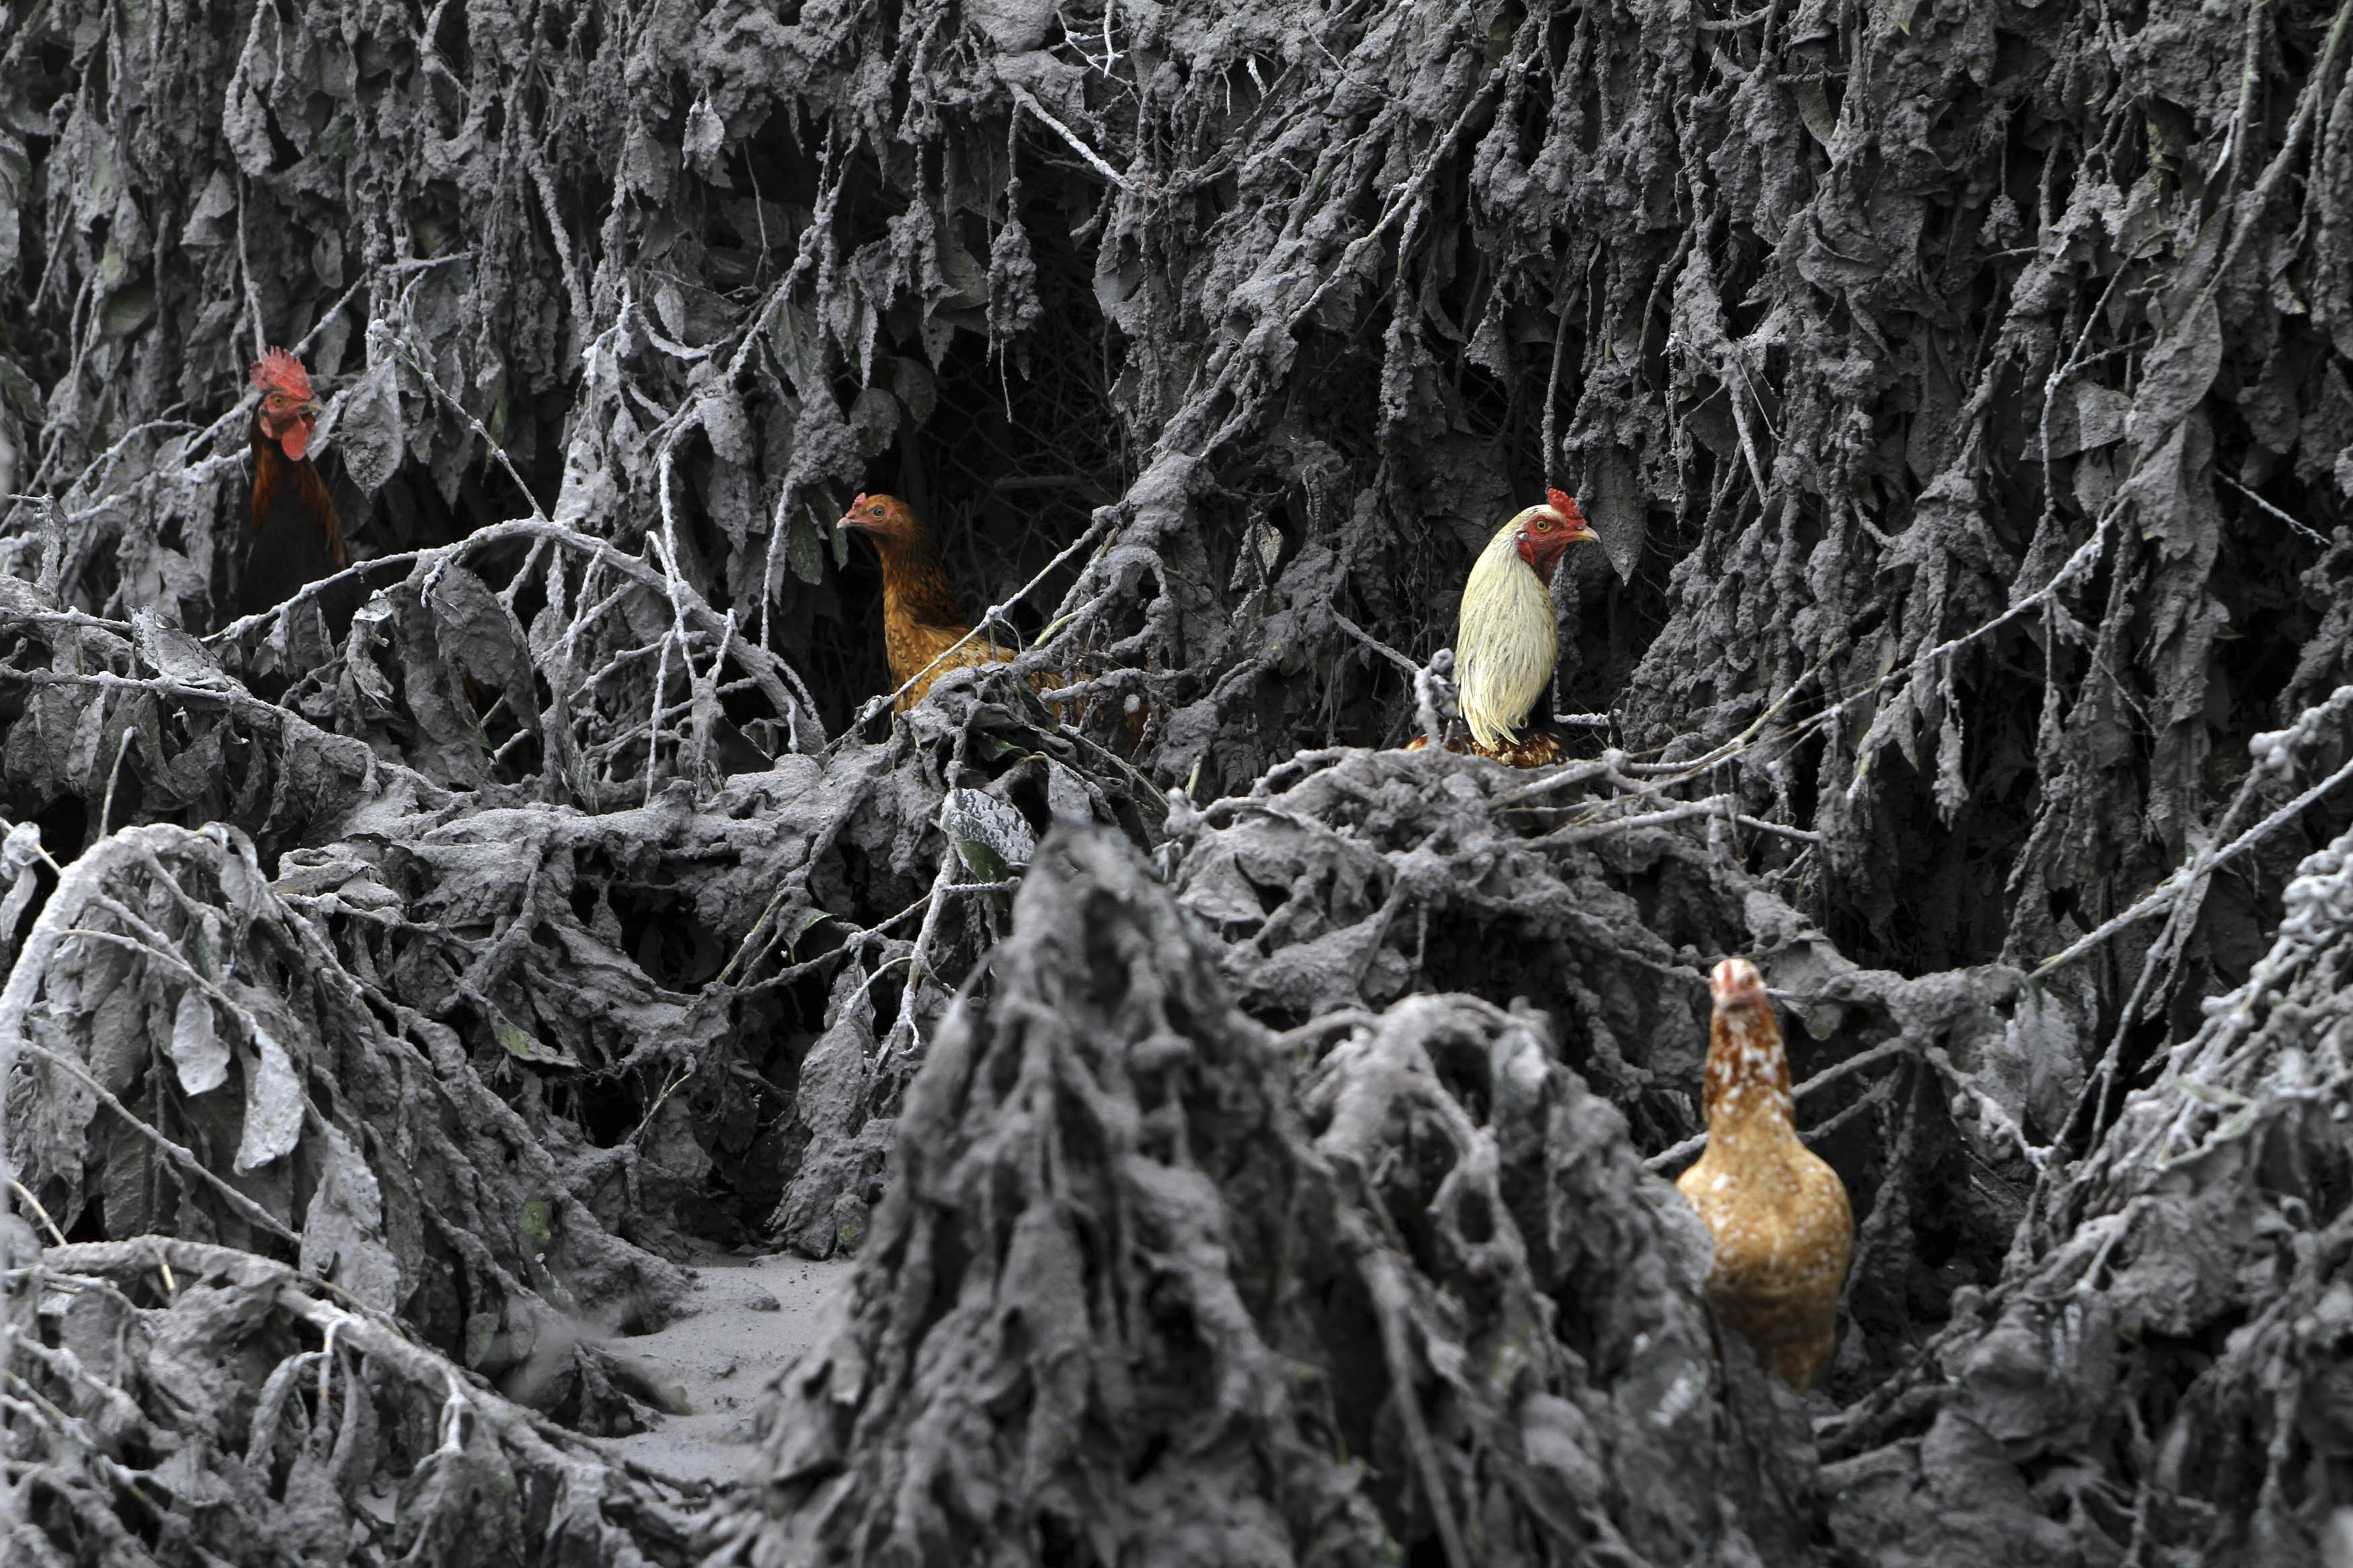 Chickens are seen in the midst of plants covered by ash from Mount Sinabung near Sigarang-Garang village in Karo district, Indonesia's North Sumatra province, Jan. 12, 2014.